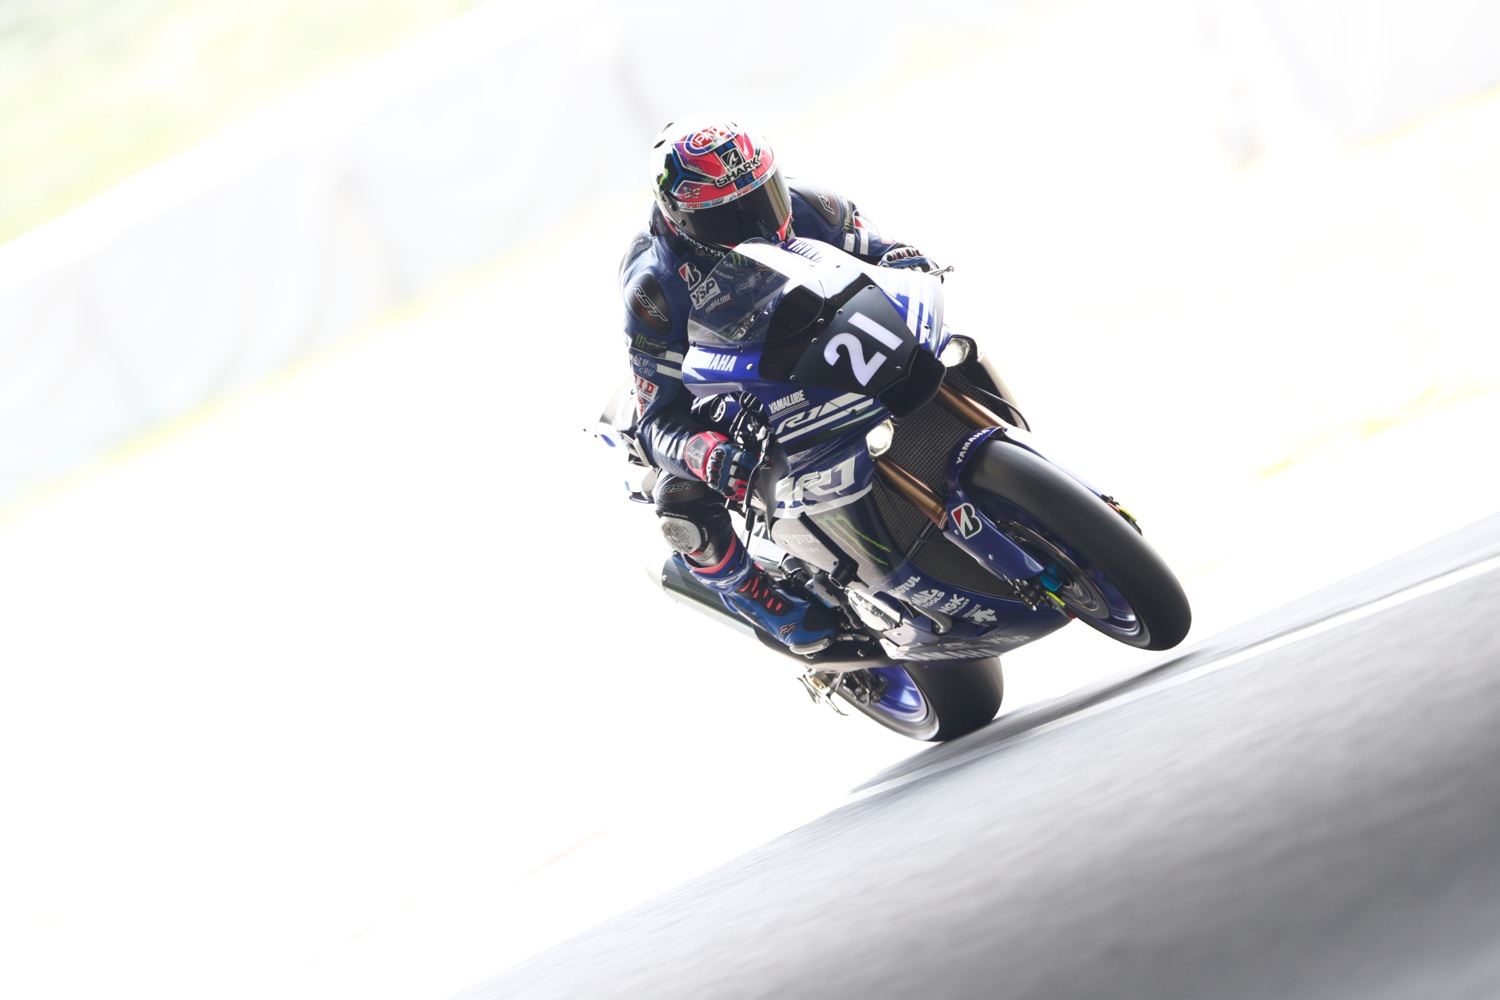 Yamaha factory racing team aiming for historic hat trick for Yamaha racing team